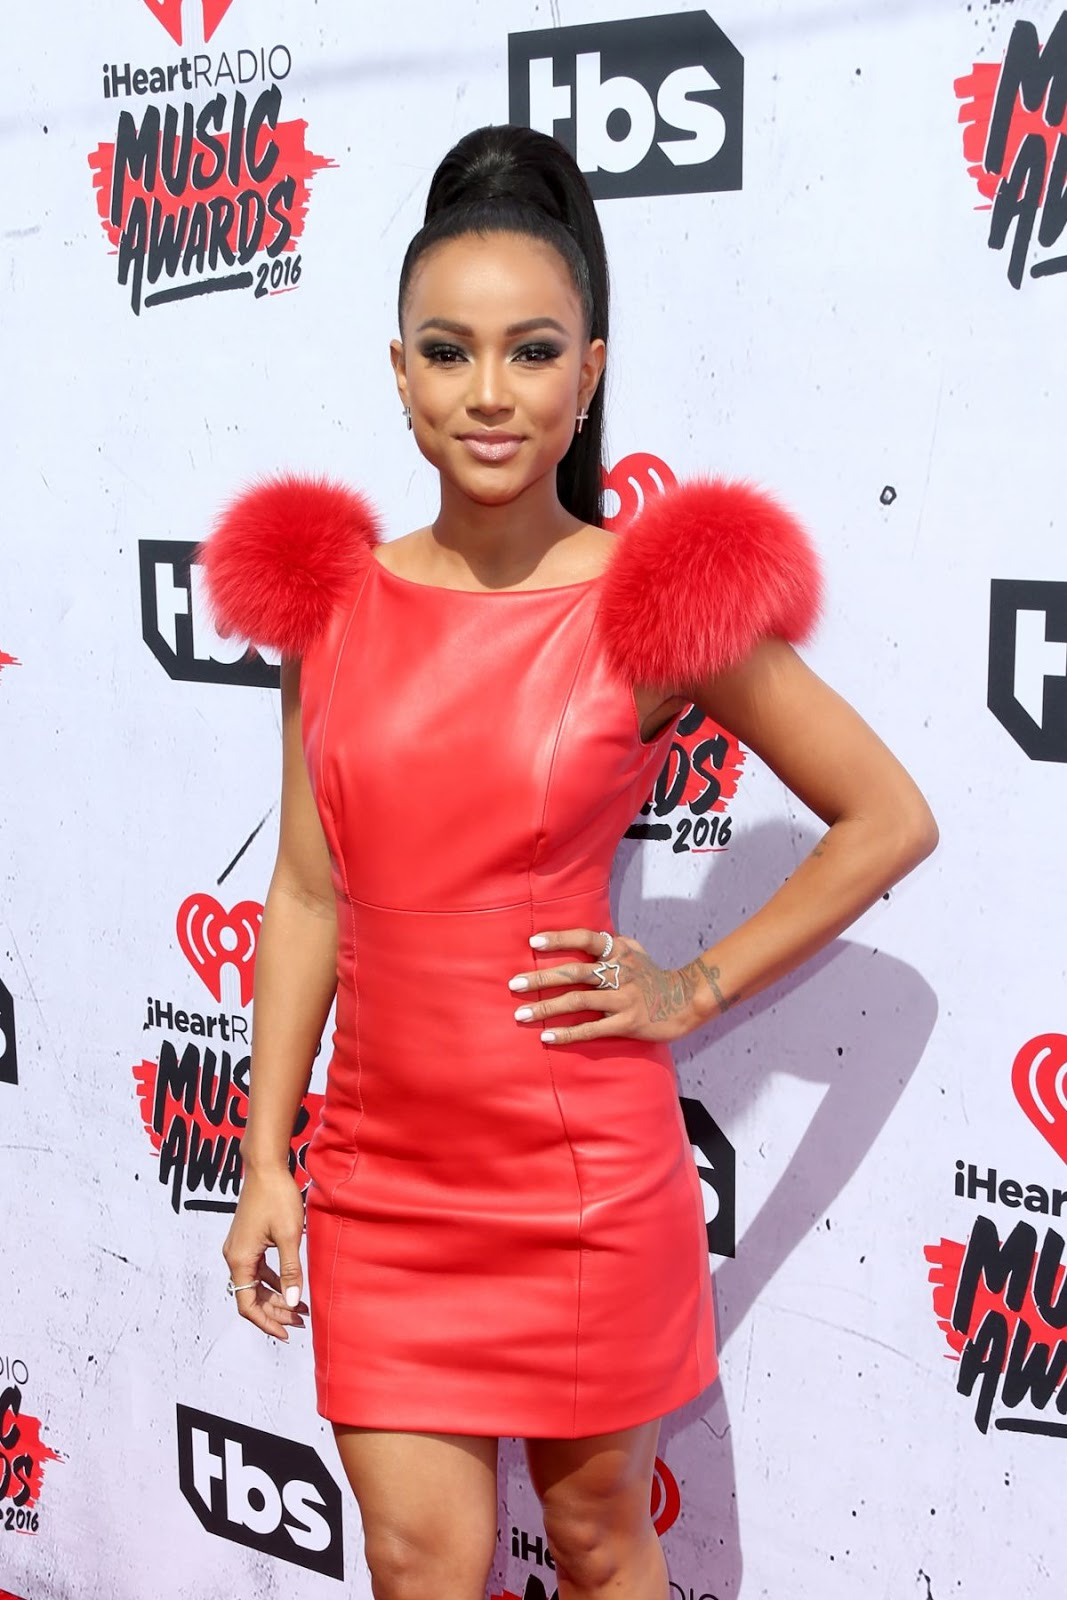 Karrueche Tran attends iHeartRadio Music Awards 2016